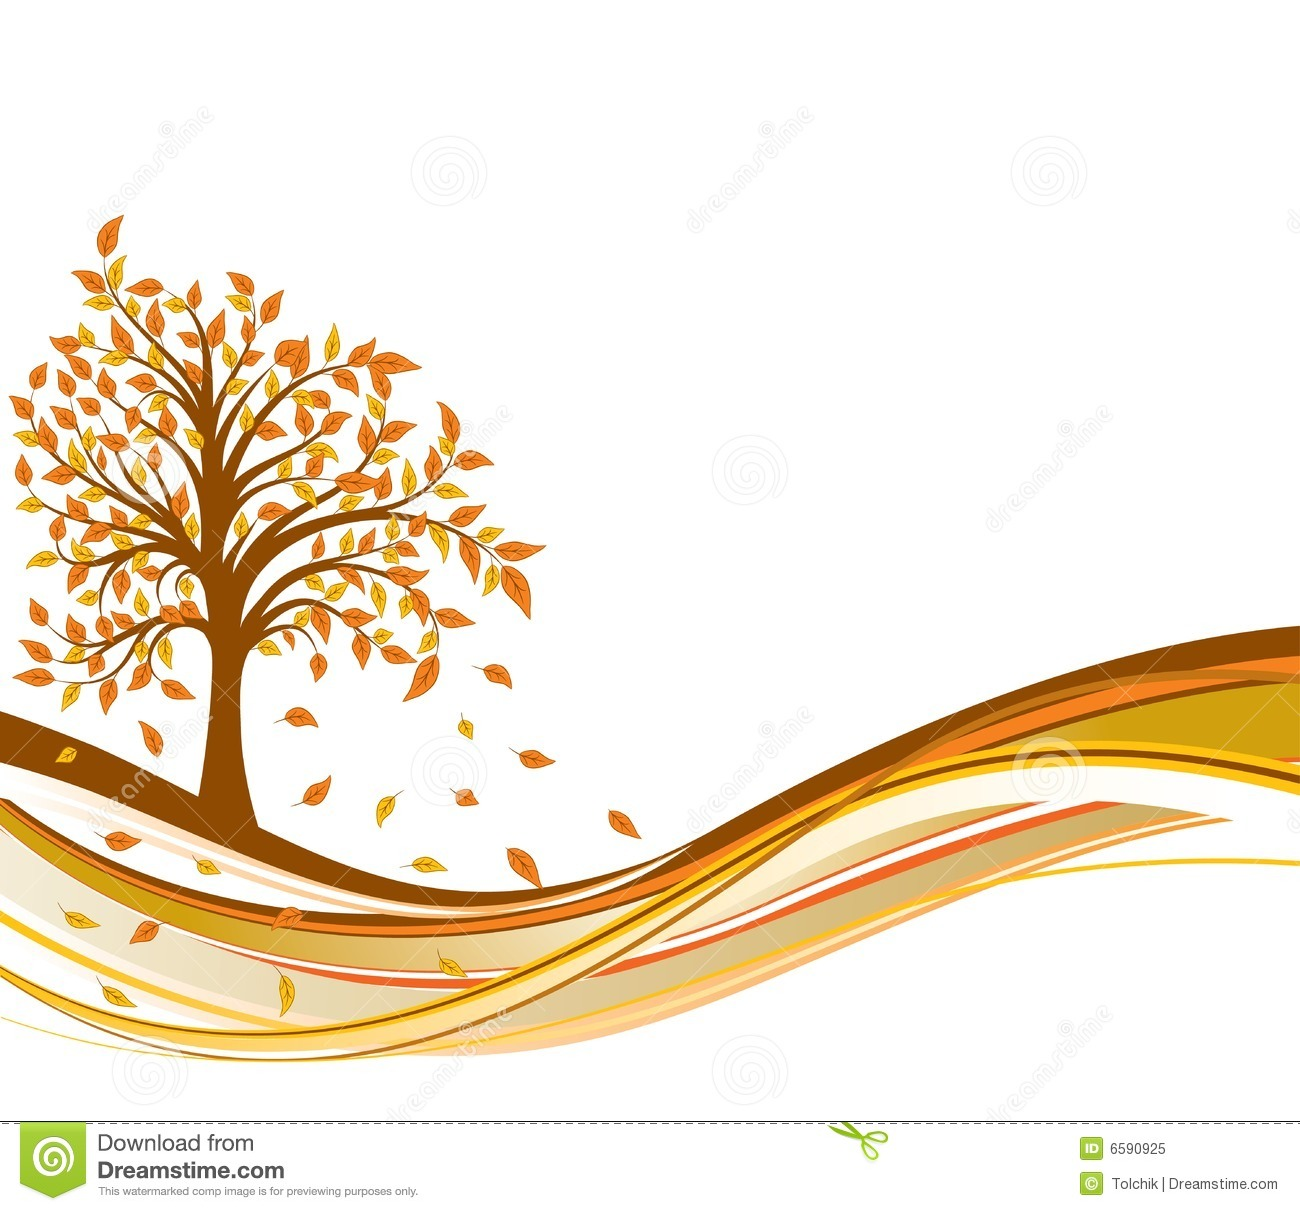 Falling Leaves Wallpaper Free Download Tree Autumn Background Vector Royalty Free Stock Photo